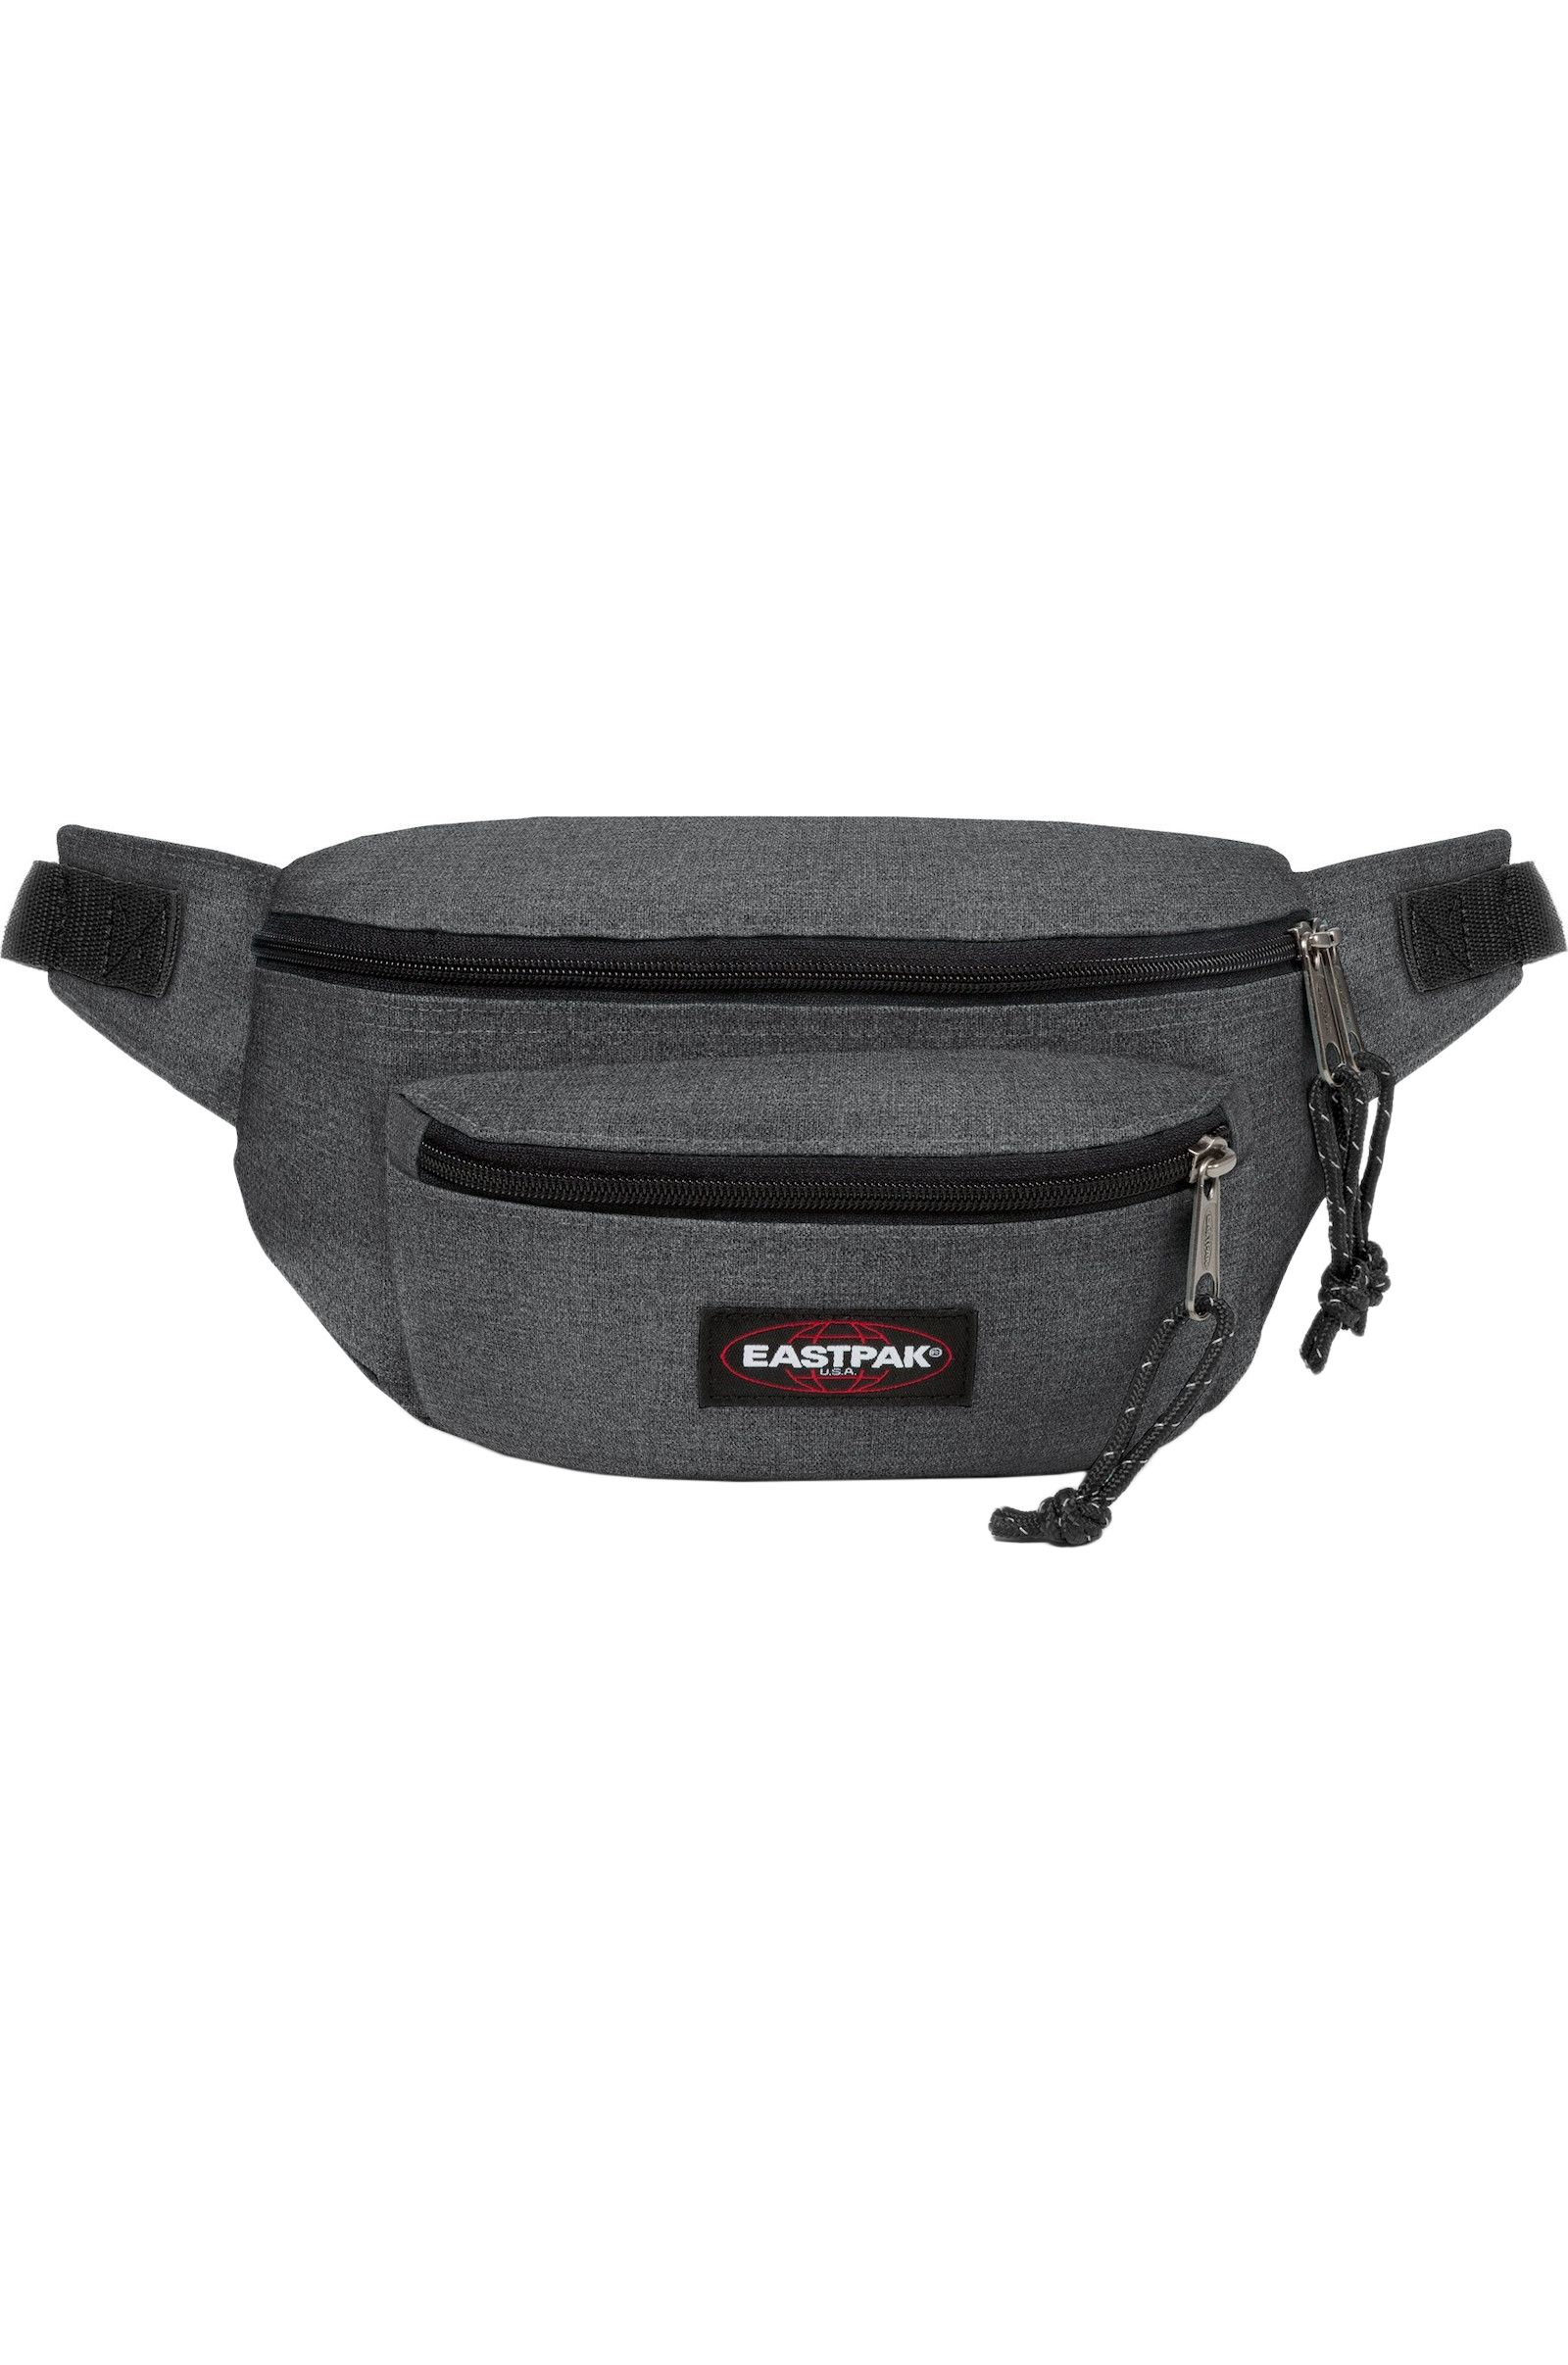 Bolsa Cintura Eastpak DOGGY BAG Black Denim